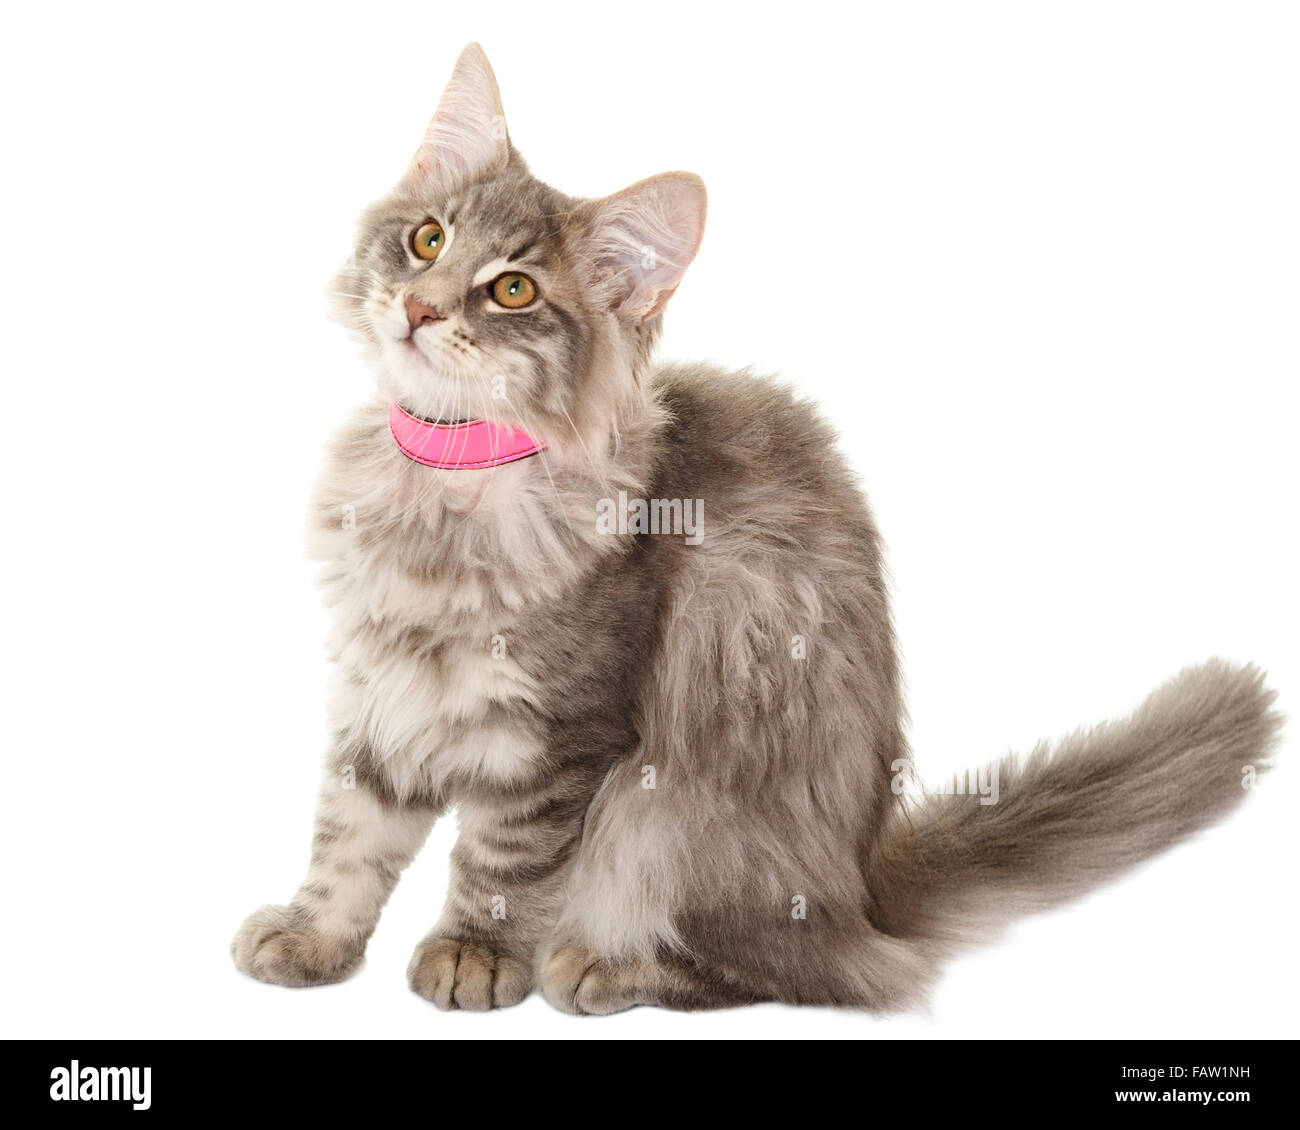 Norwegain forest cat kitten portrait isolated on white background  Model Release: No.  Property Release: No. - Stock Image